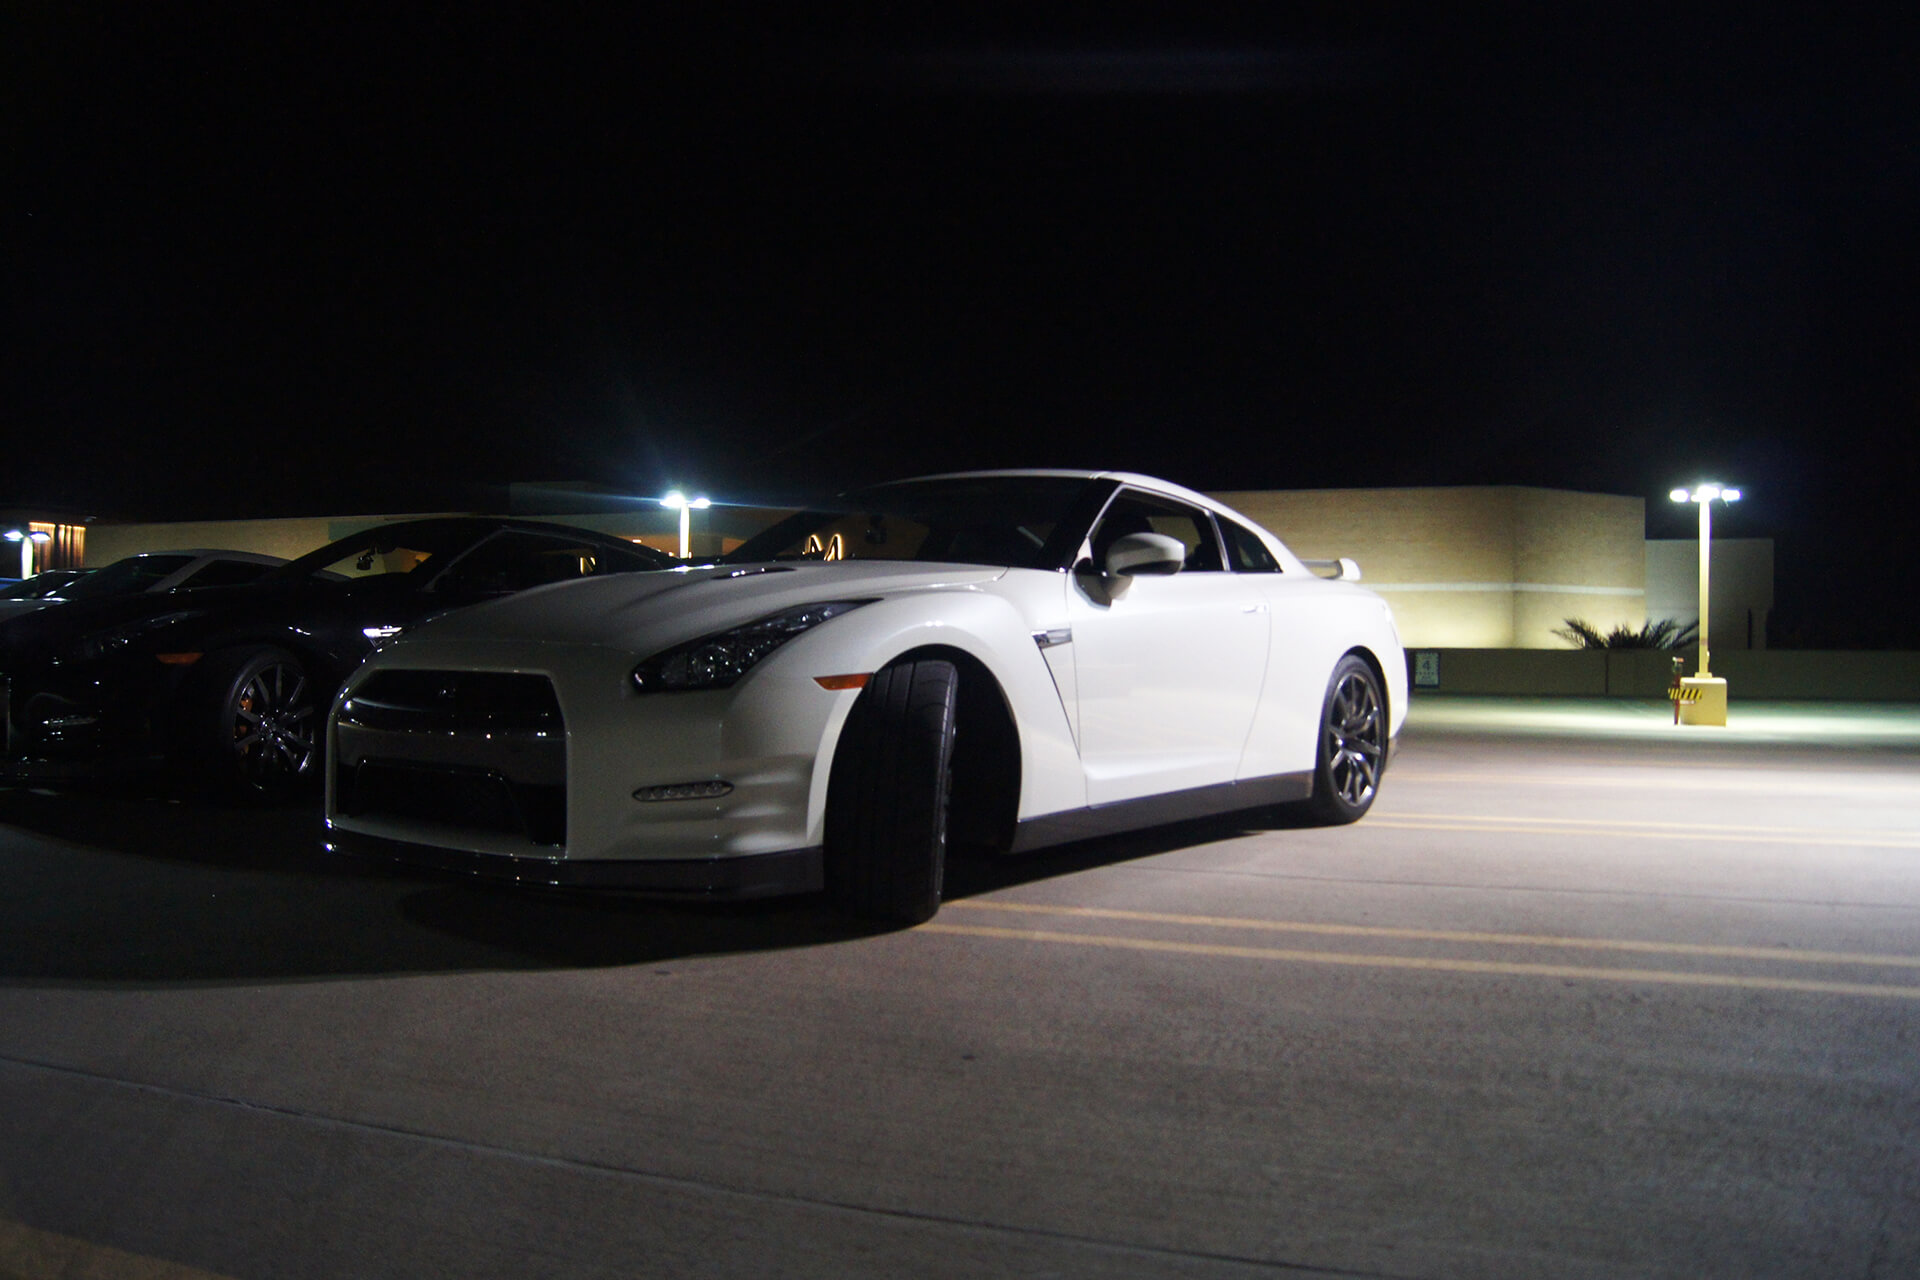 White Nissan GTR Parking Garage Wallpapers 61815 1920x1280px